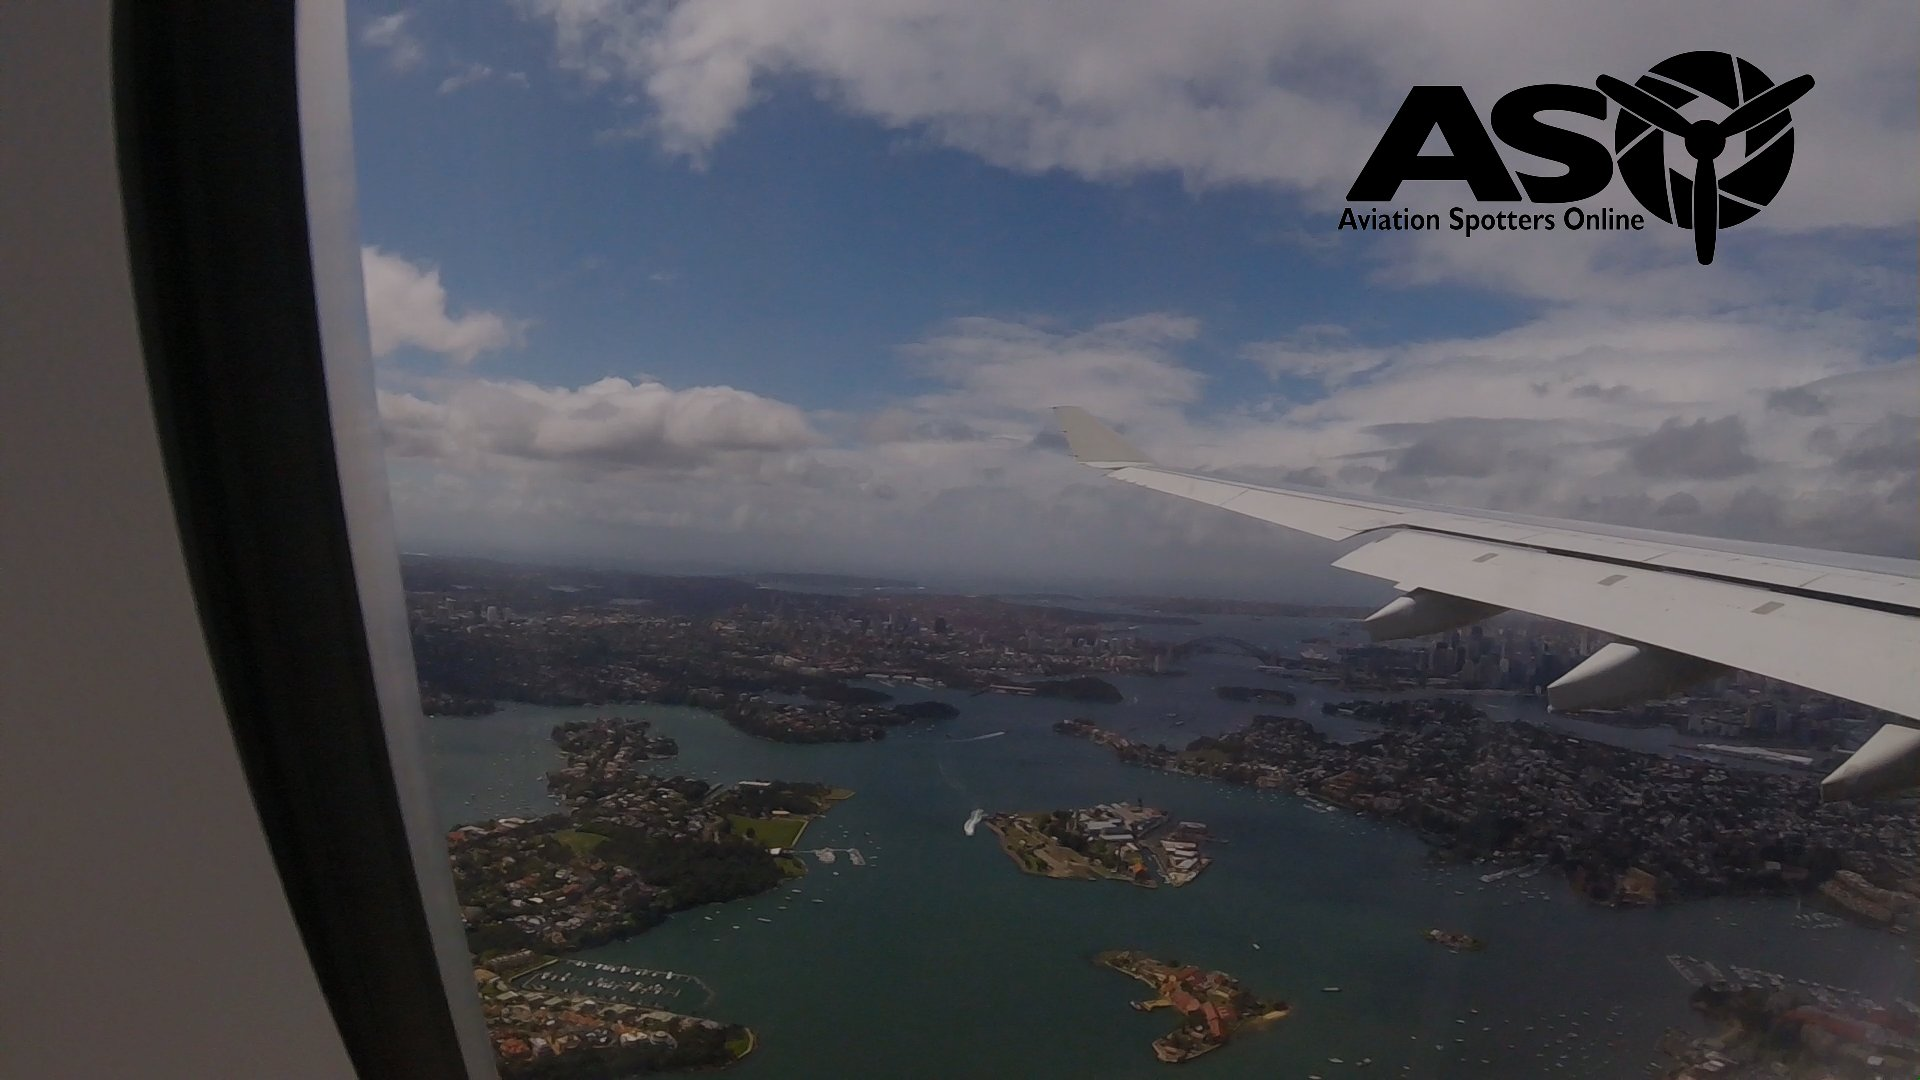 QANTAS Airbus A330 landing at Sydney Airport in strong wind